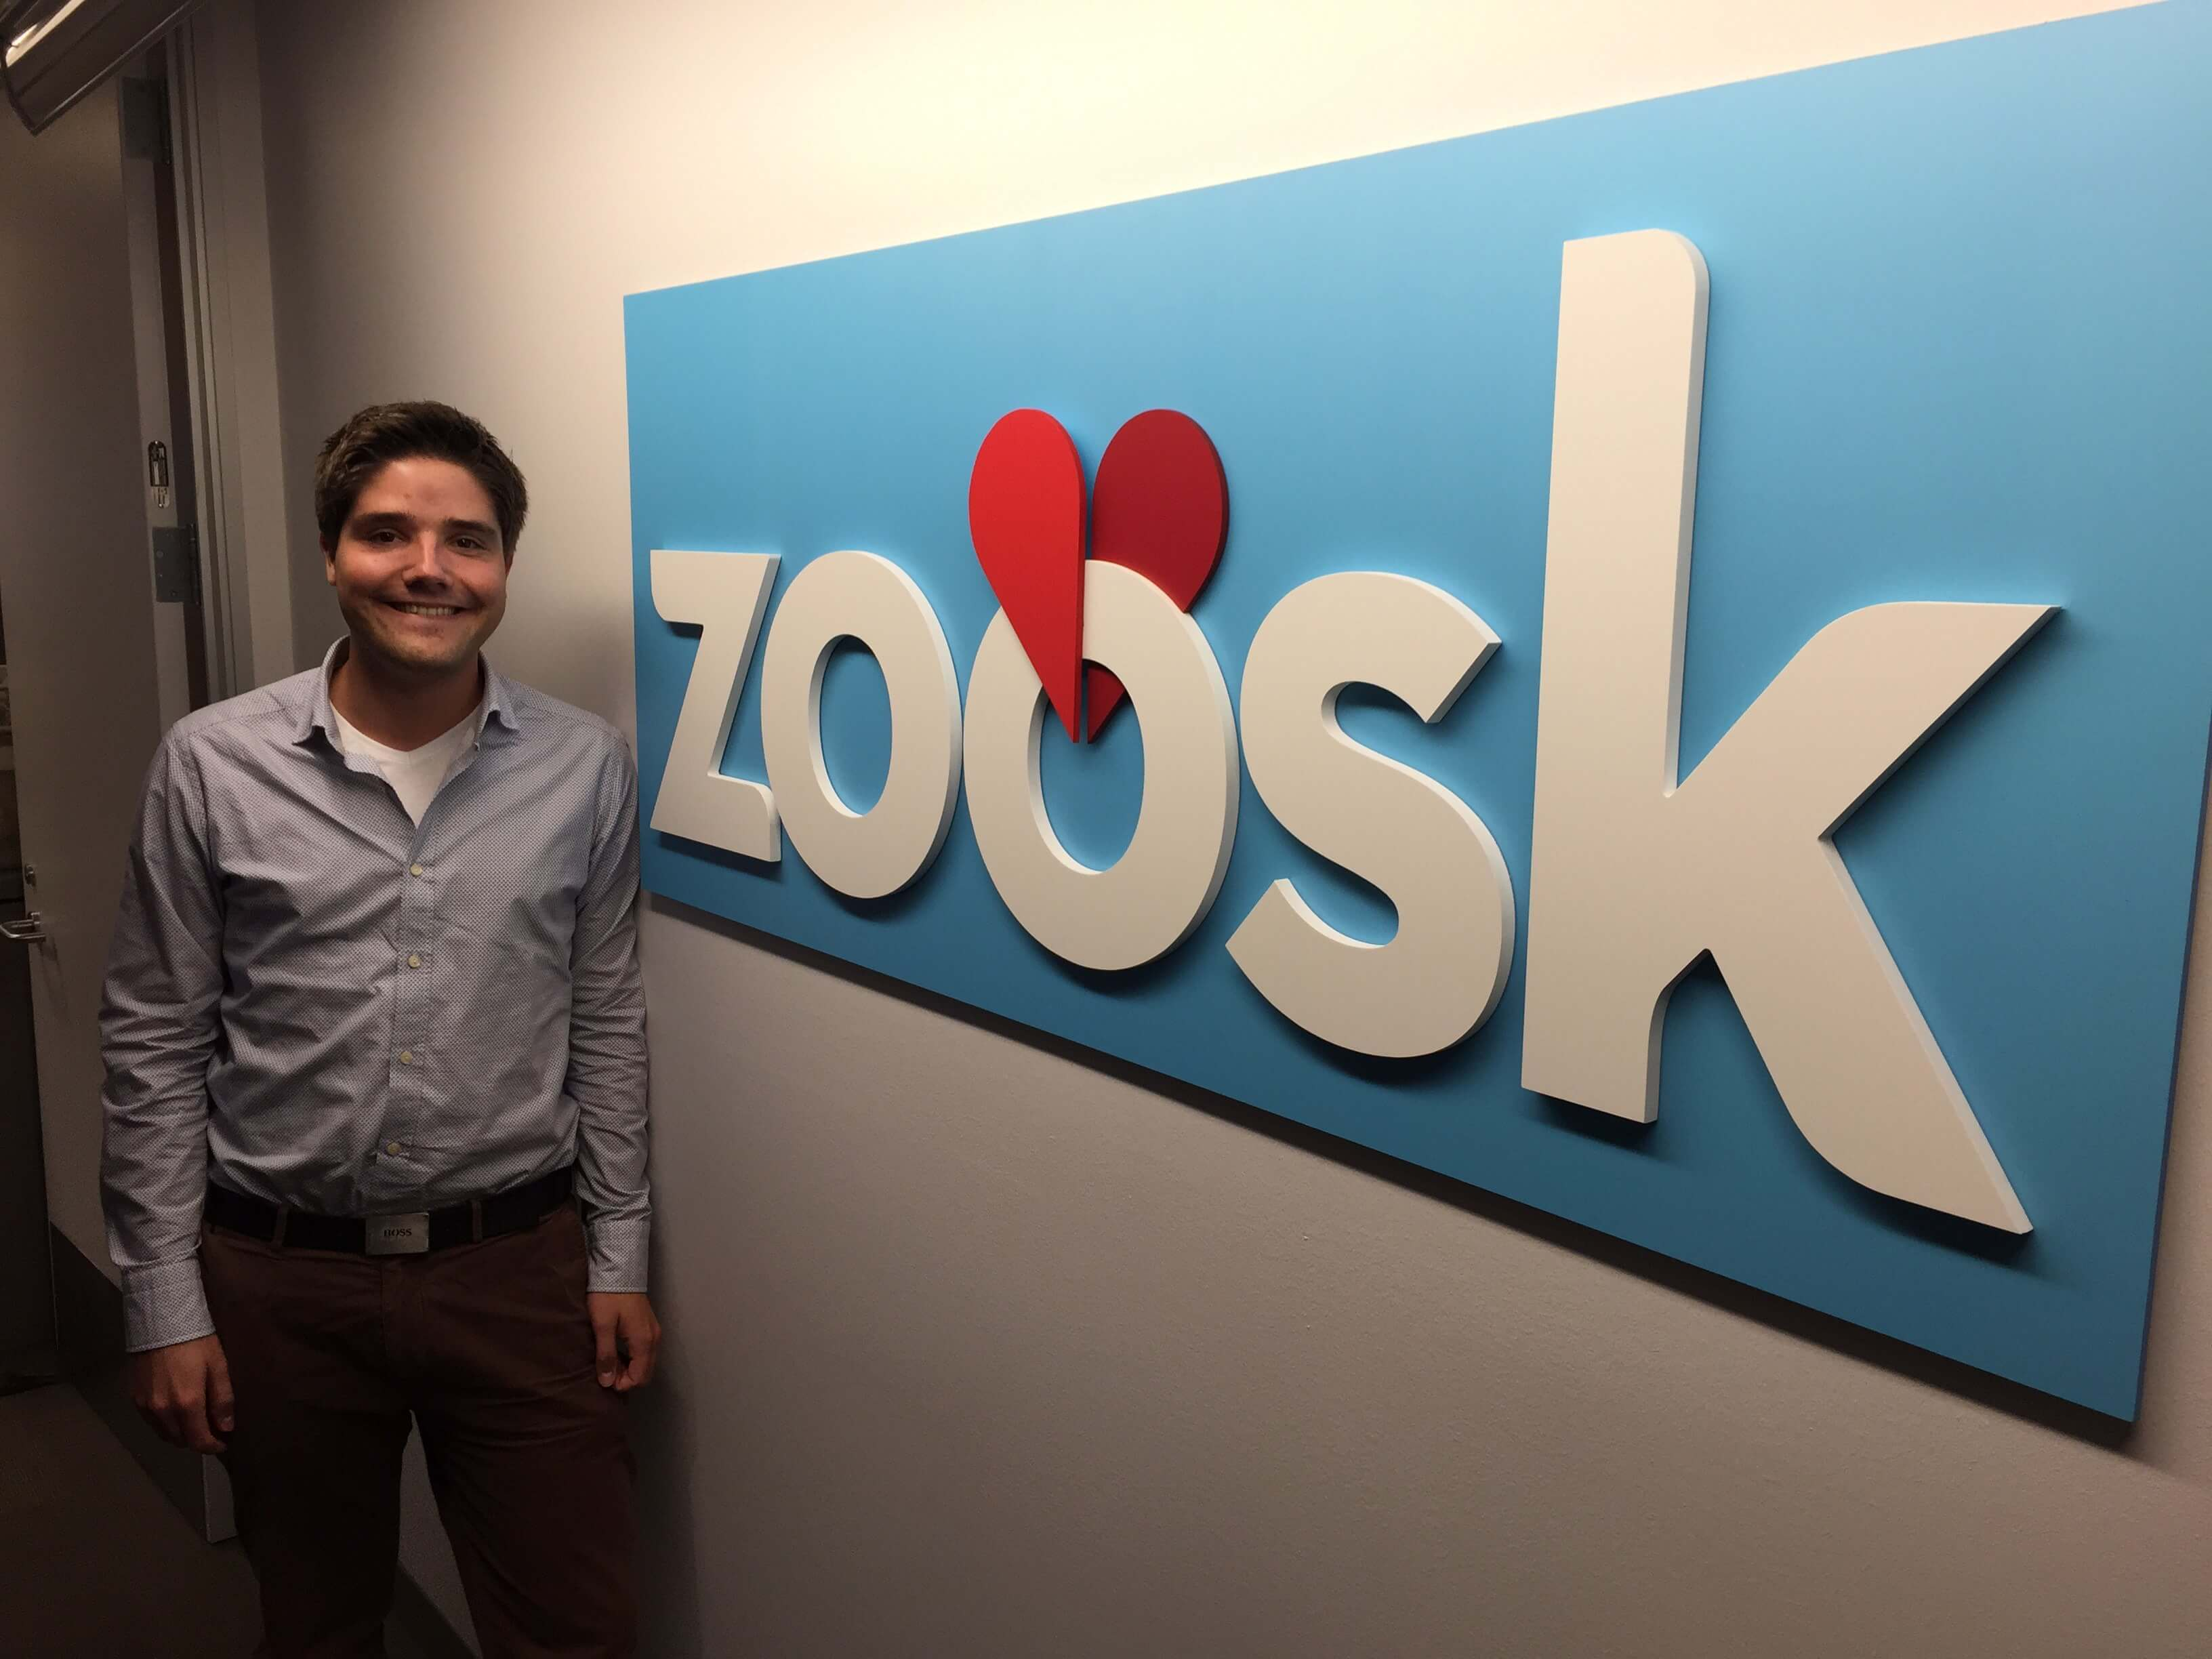 Zoosk in San Francisco